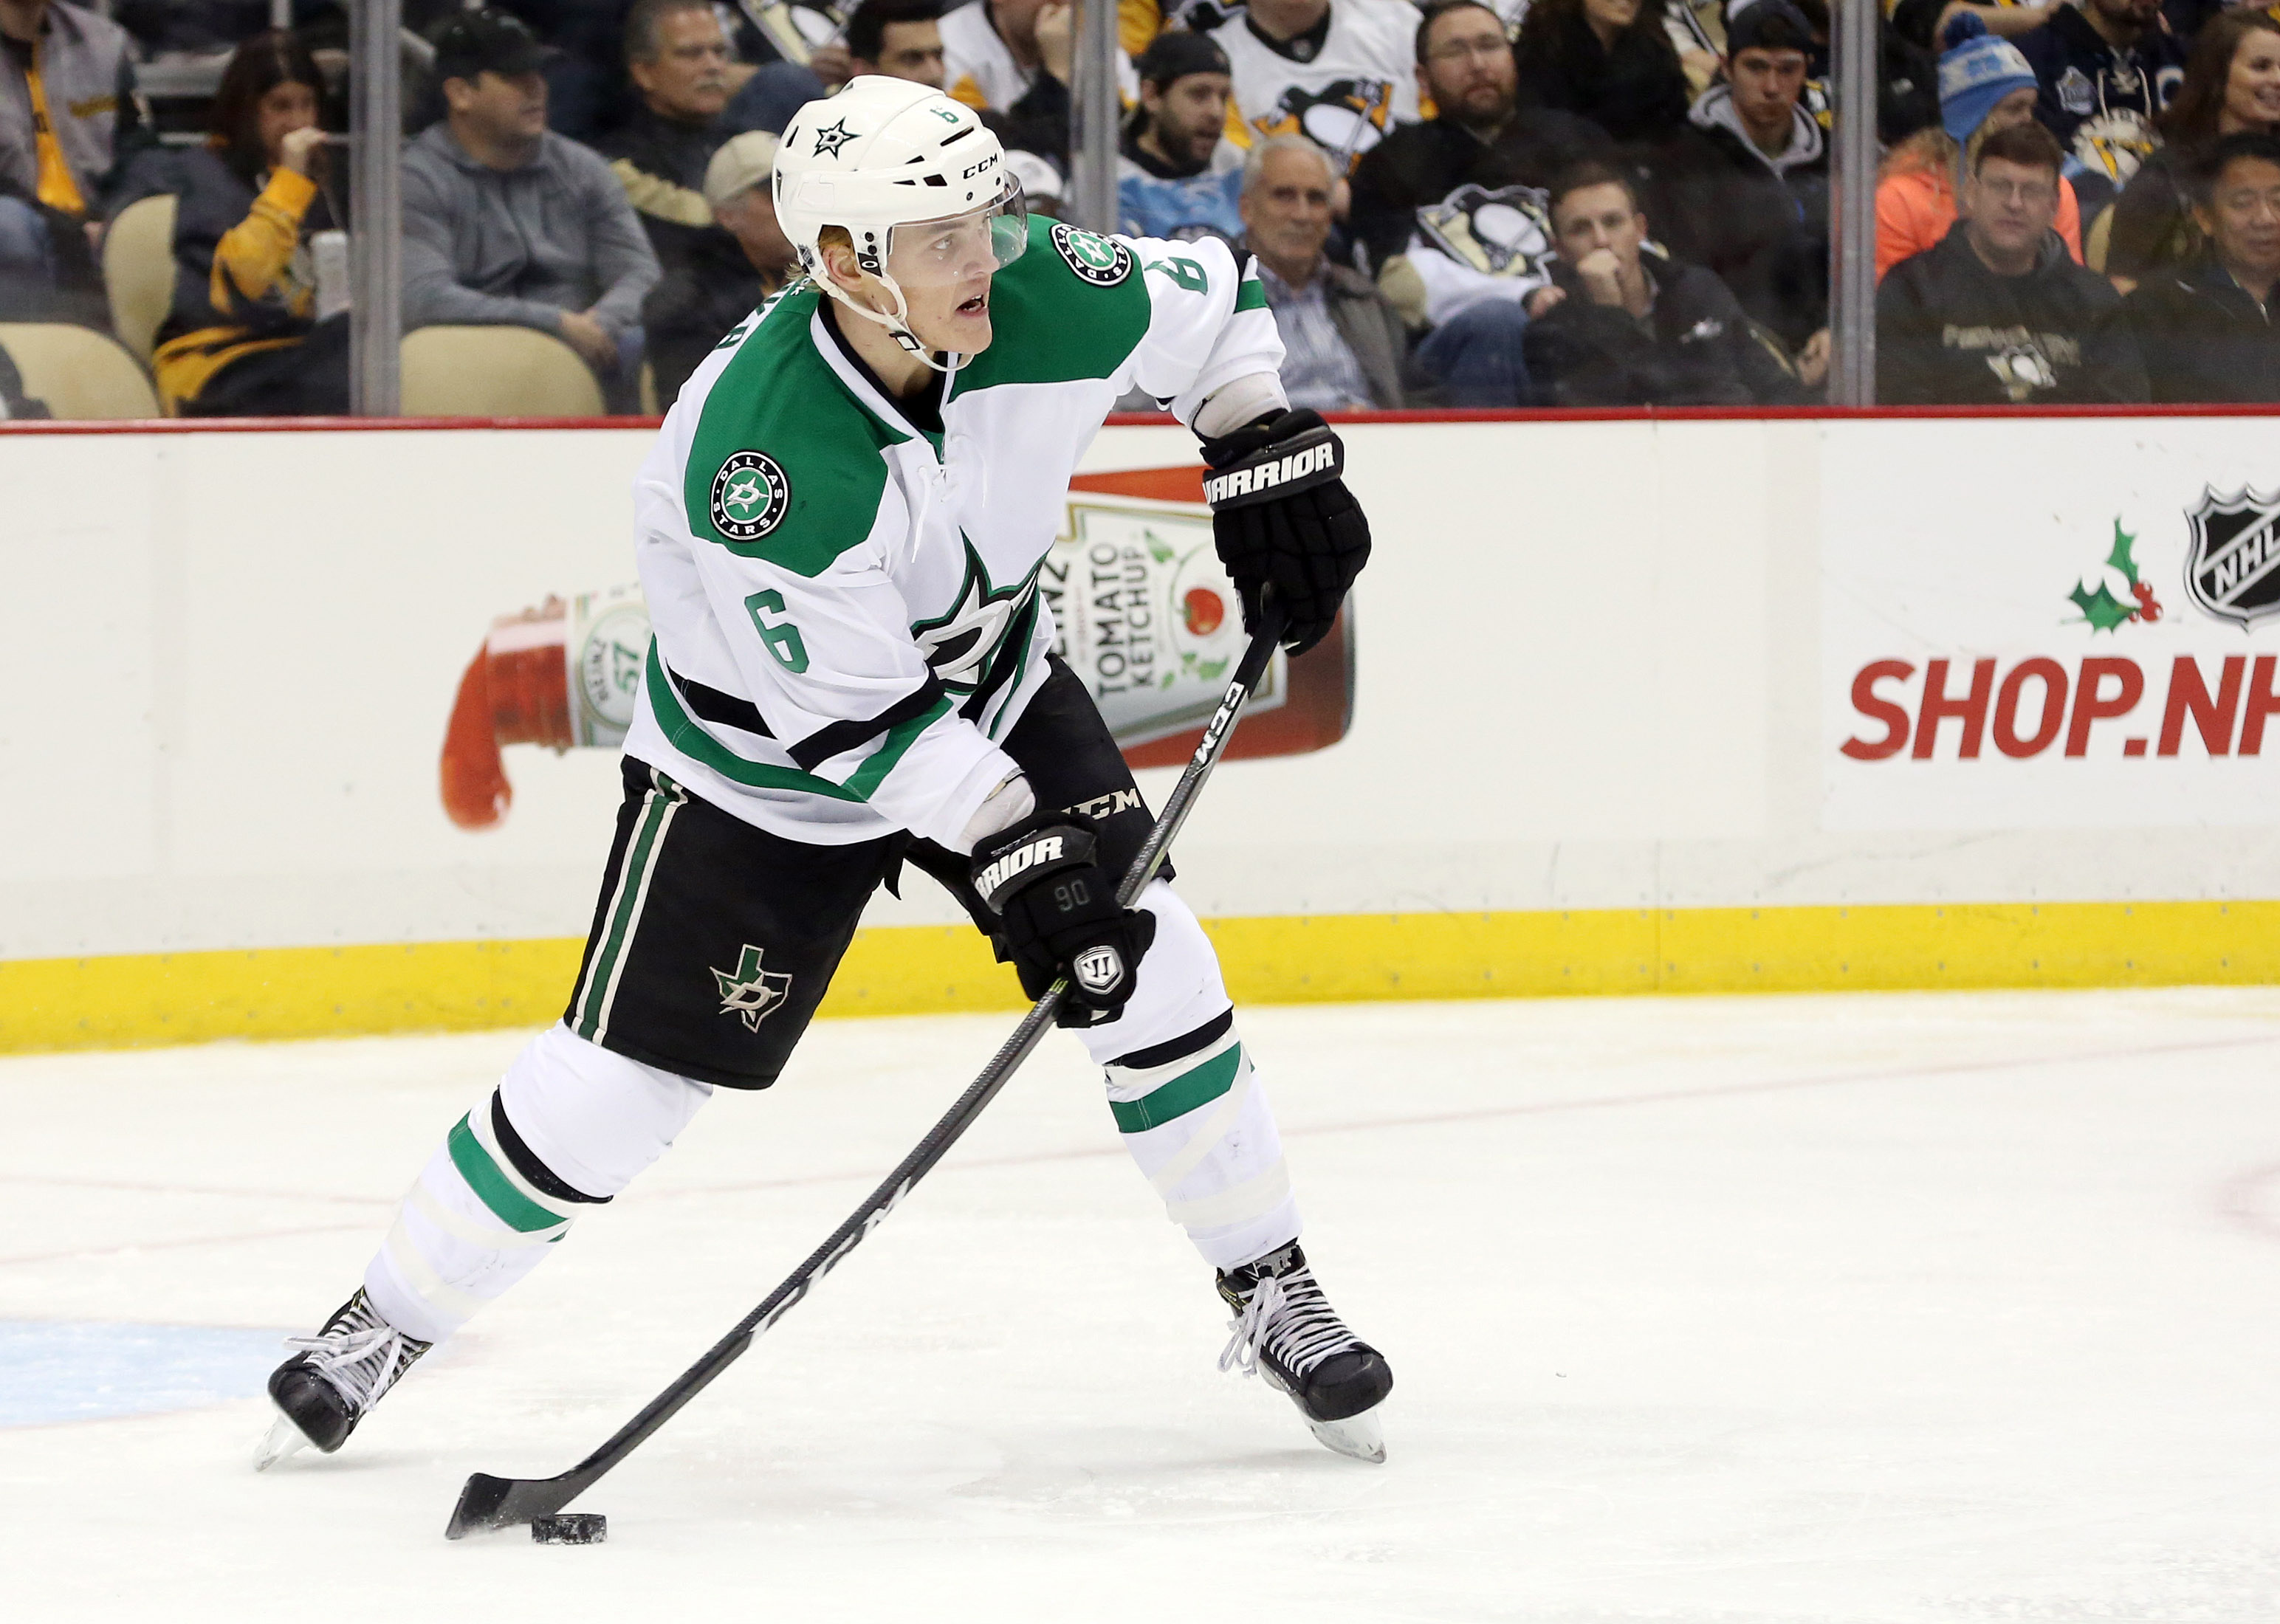 NHL: Dallas Stars at Pittsburgh Penguins